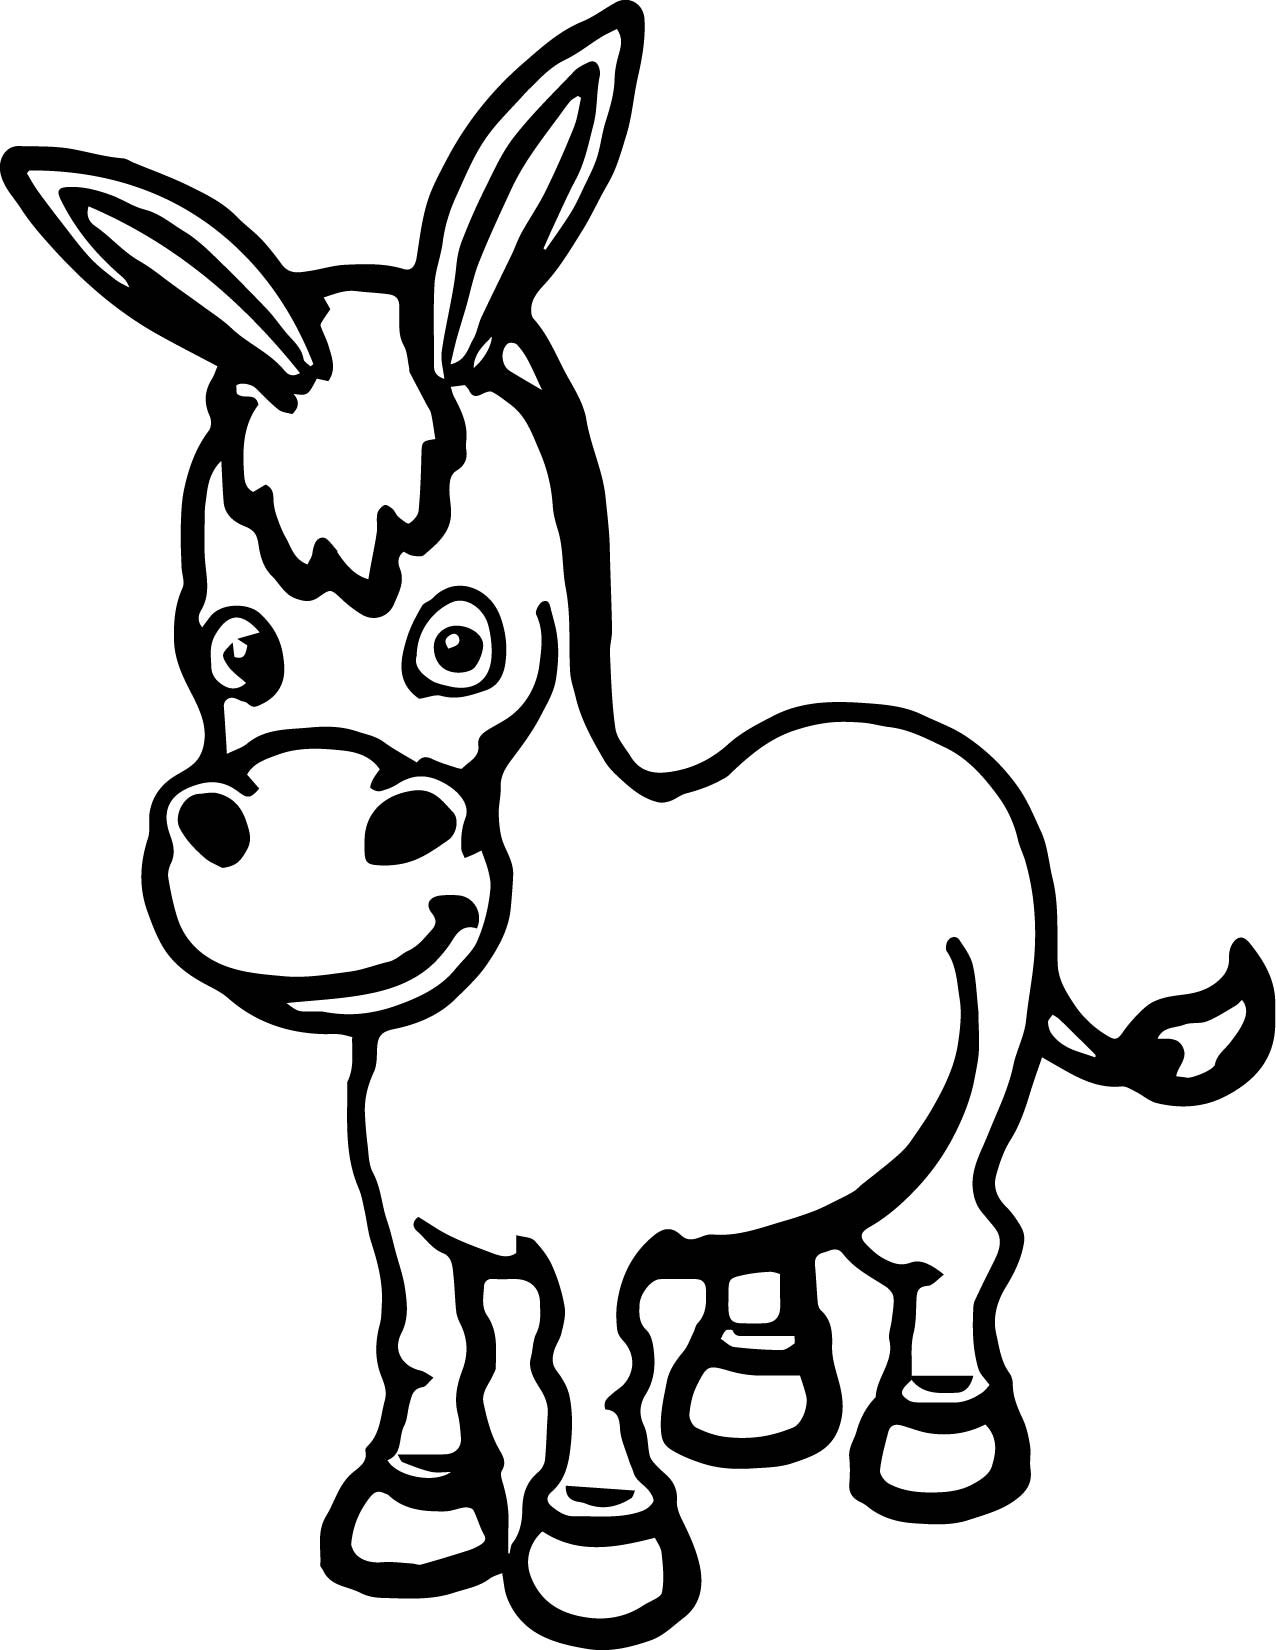 1276x1650 Cartoon Cute Donkey Coloring Page Wecoloringpage